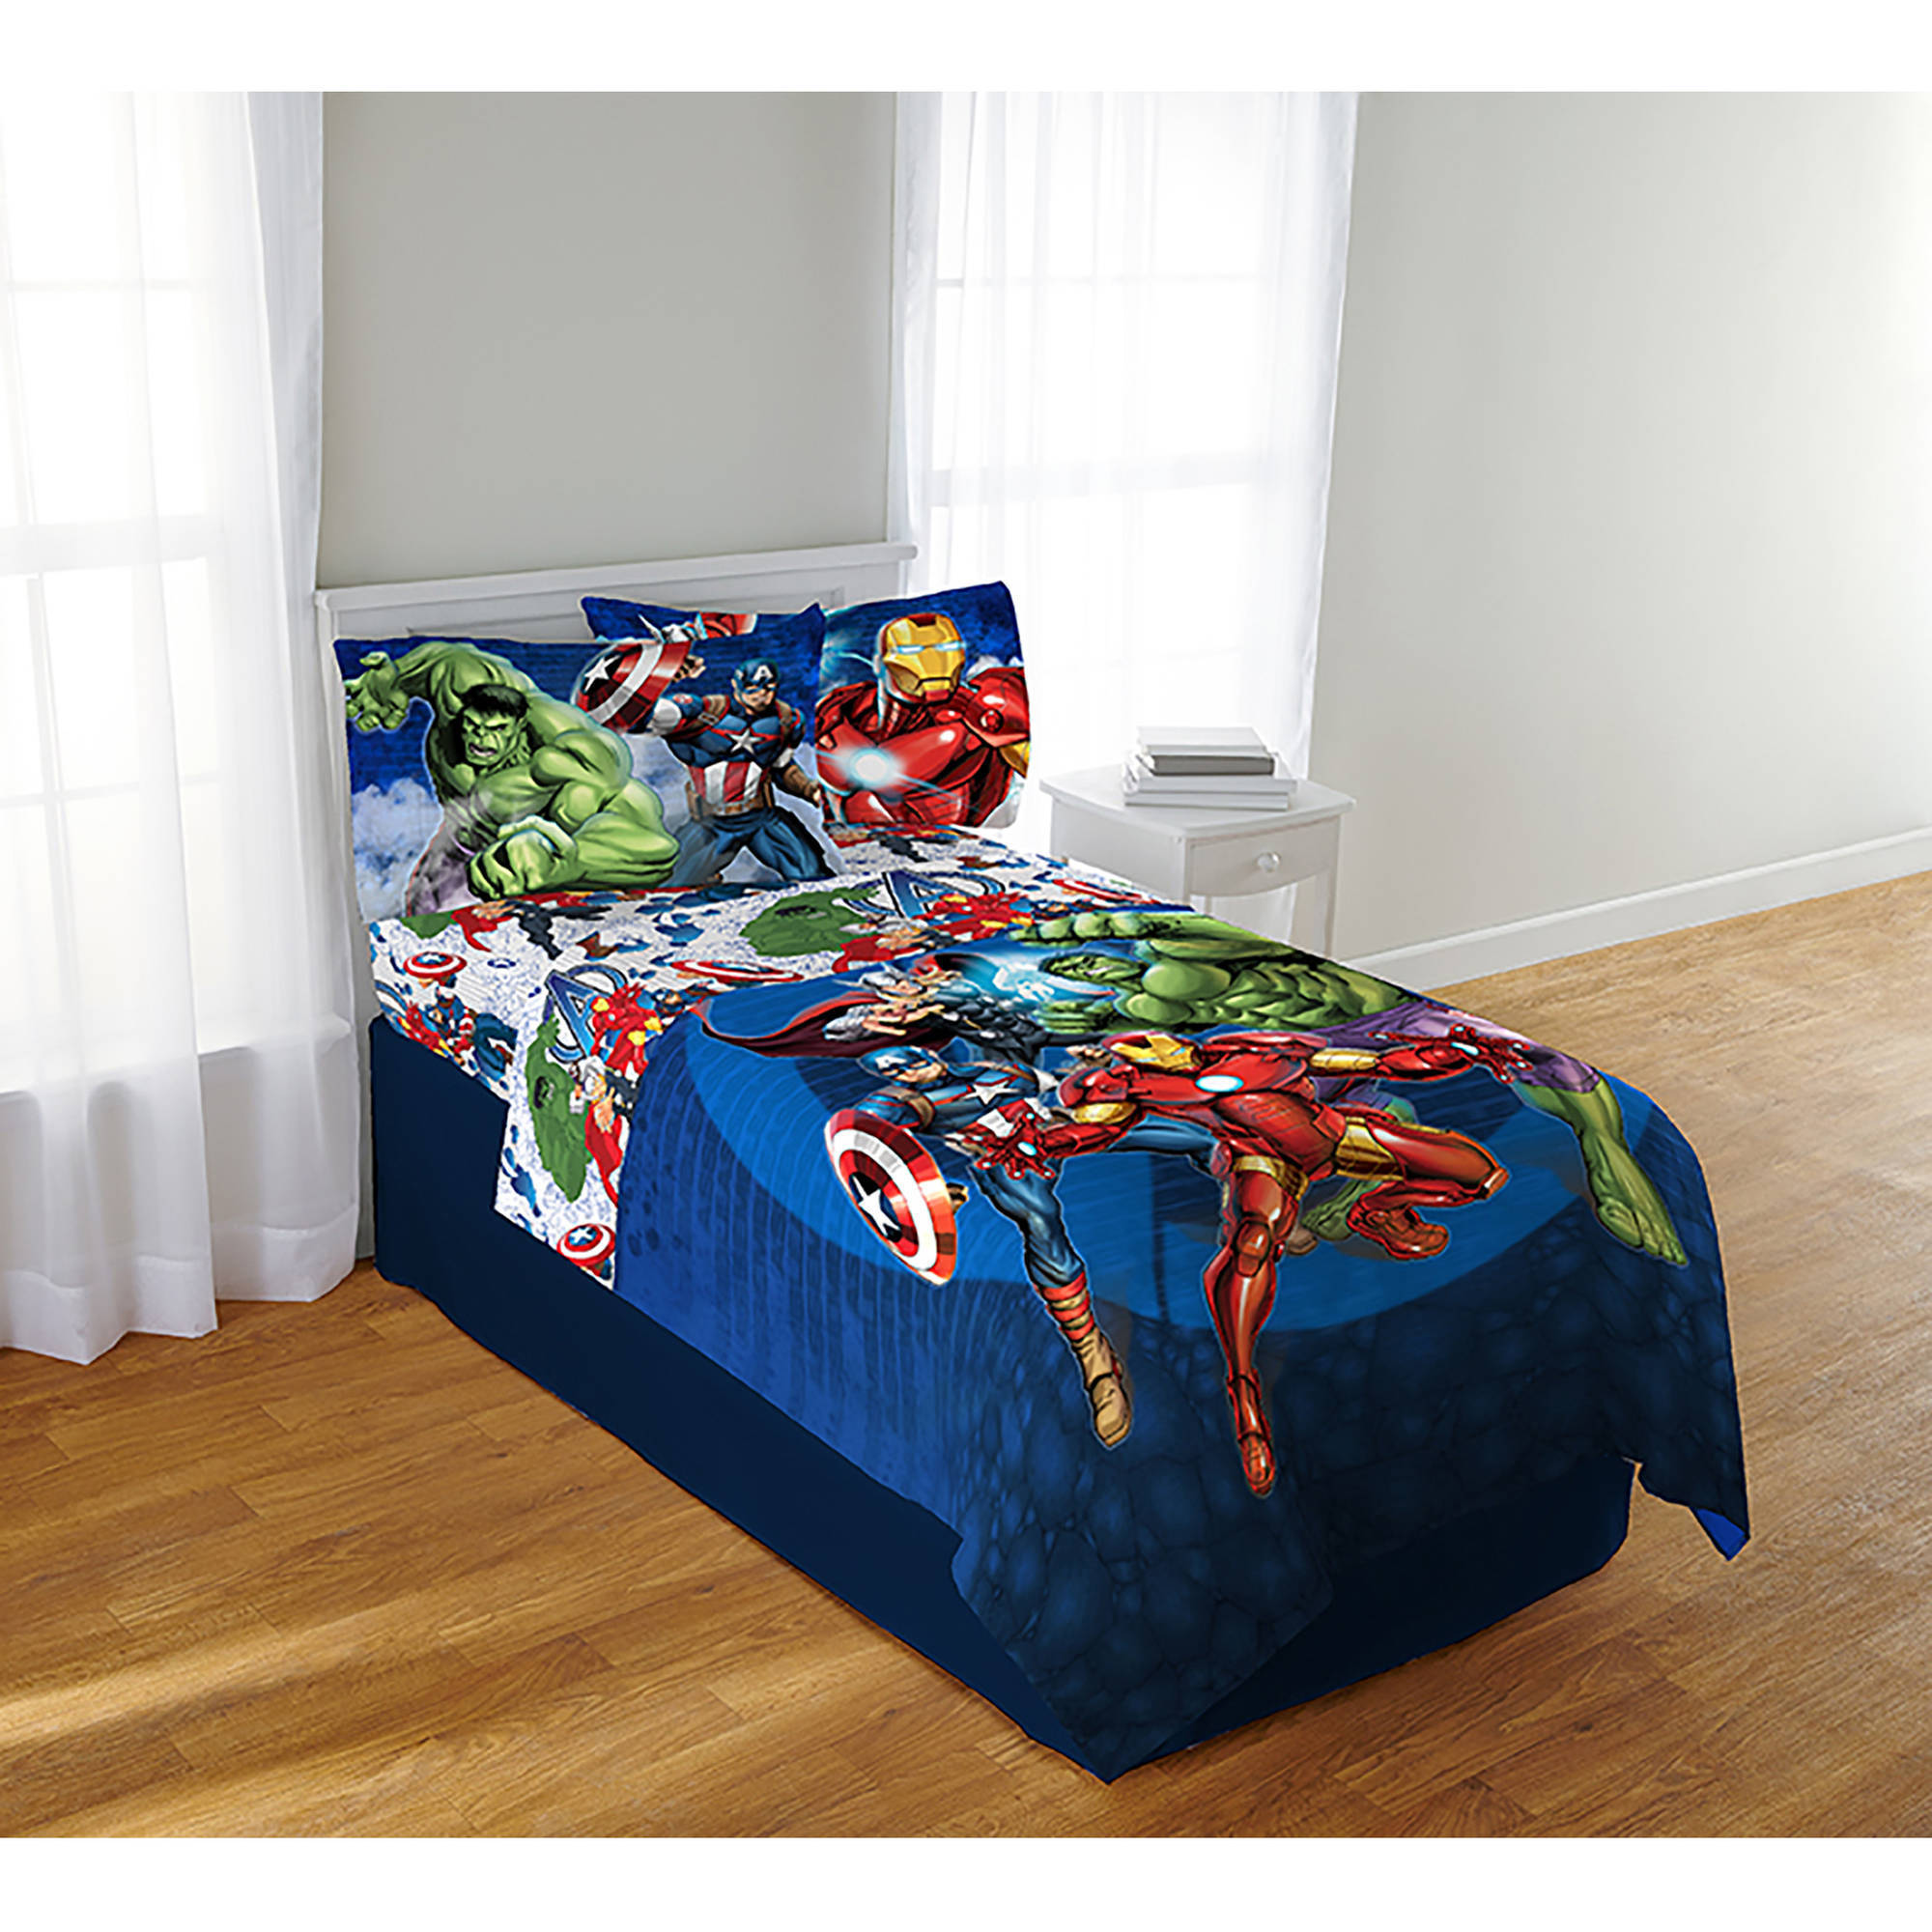 Avengers blue circle bedding sheet set twin full